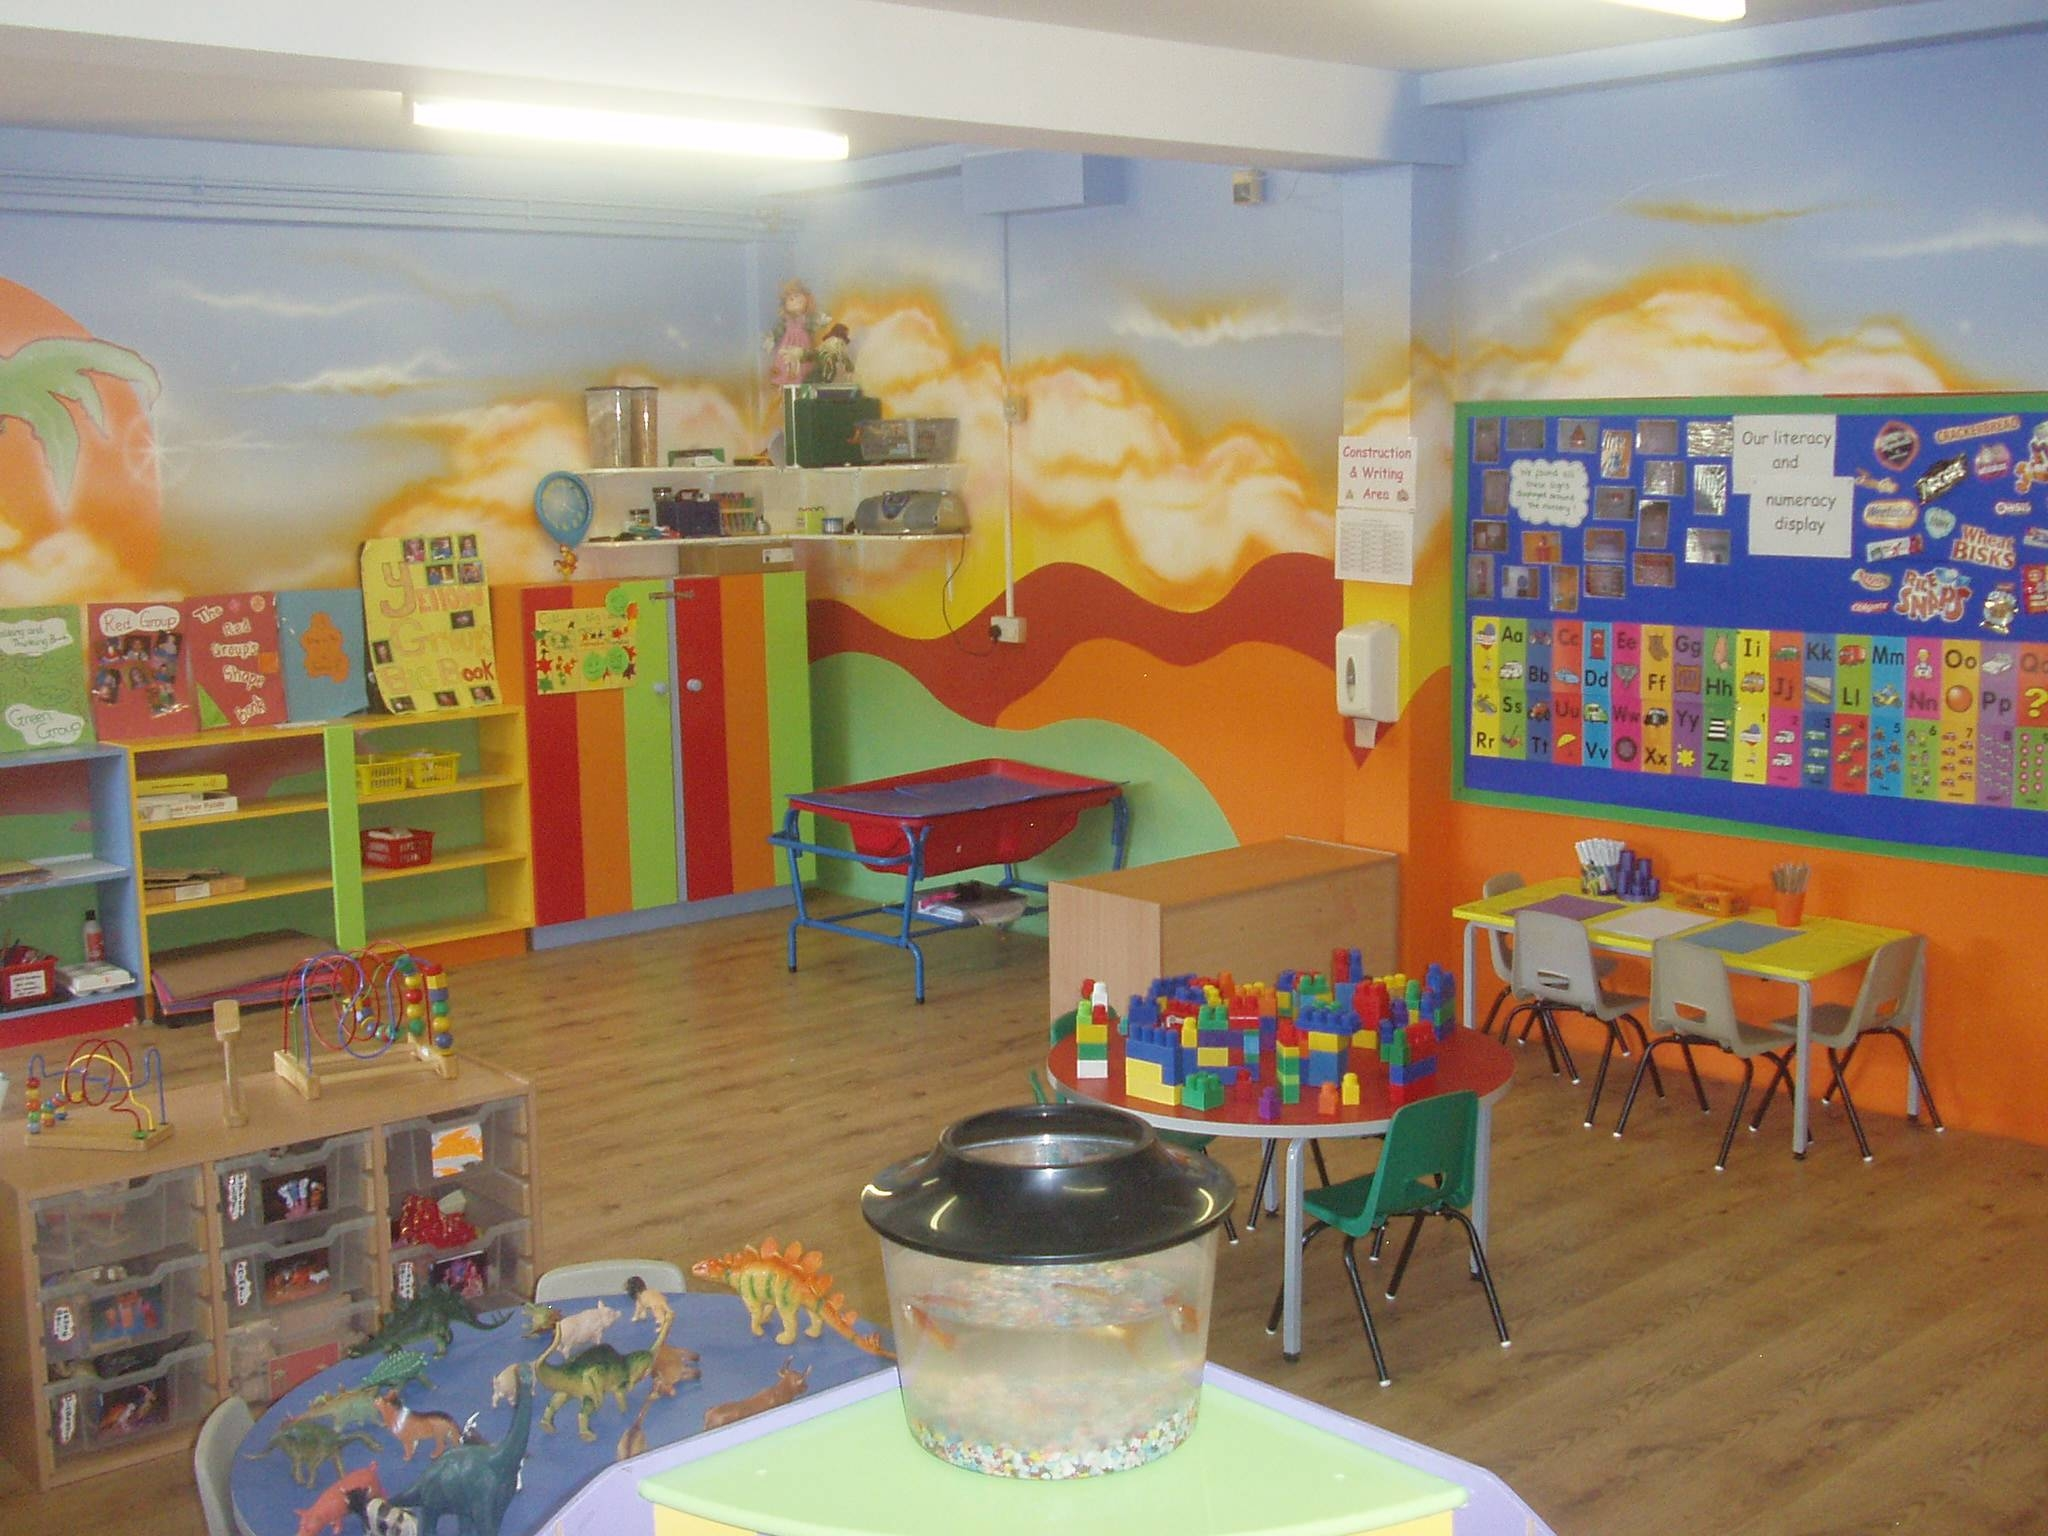 This Is The Daycare – Basement Designs – Decorating Ideas – Hgtv Within Most Up To Date Preschool Wall Decoration (View 29 of 30)